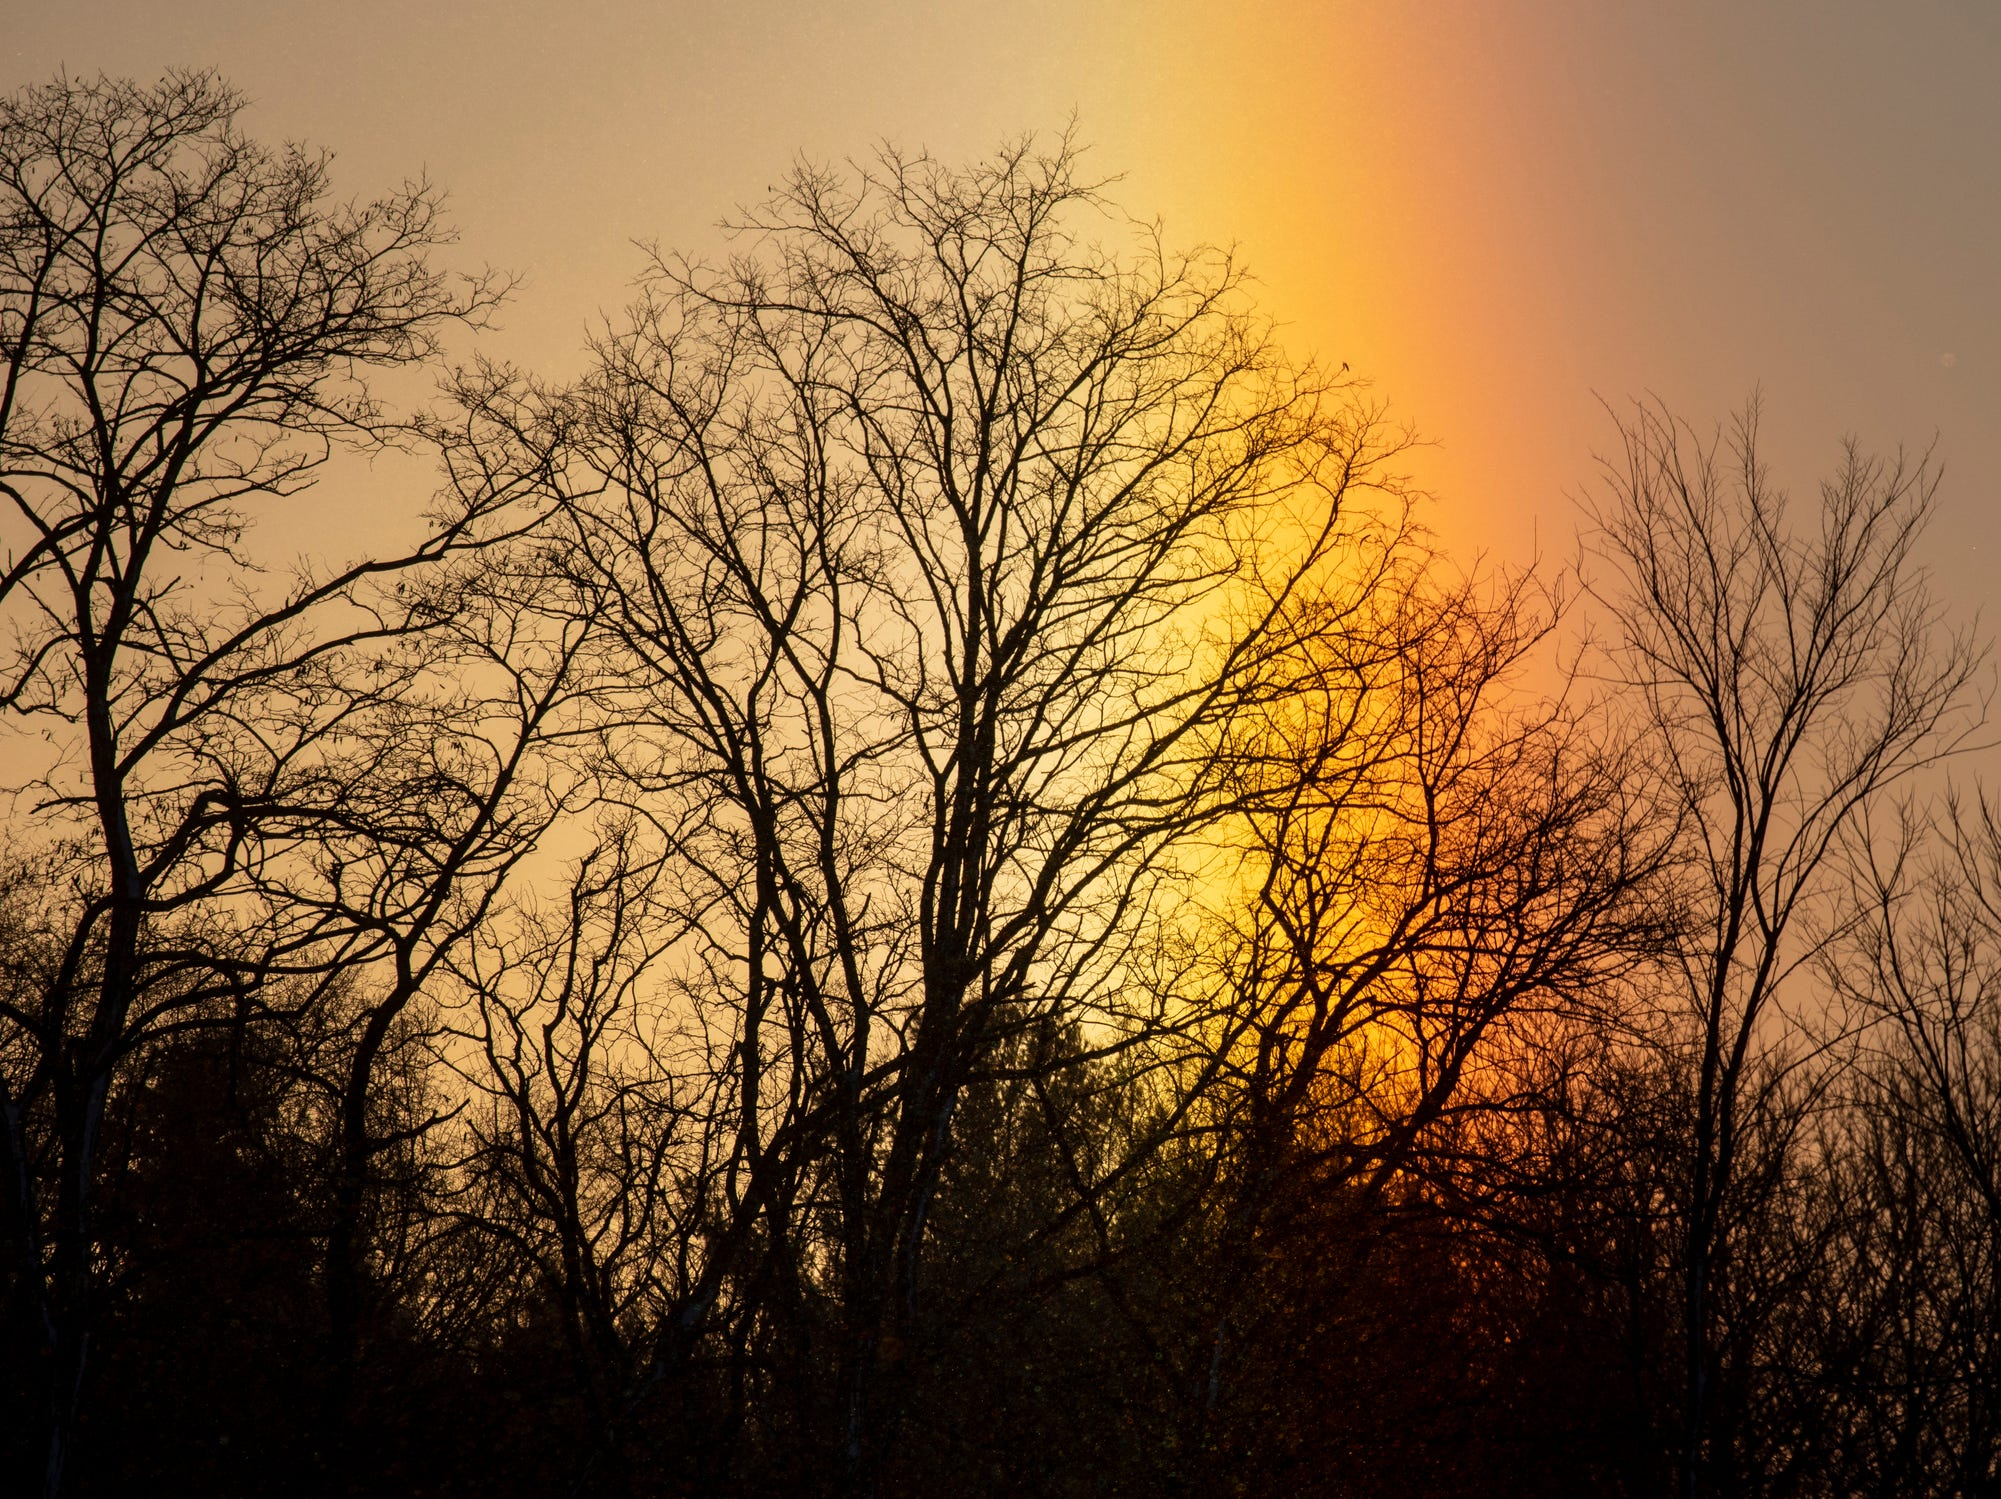 A sun dog appears in Kalamazoo, Michigan on Thursday, Jan. 31, 2019. Temperatures will be dangerously cold, with the wind chill index between -20 and -40 degrees.